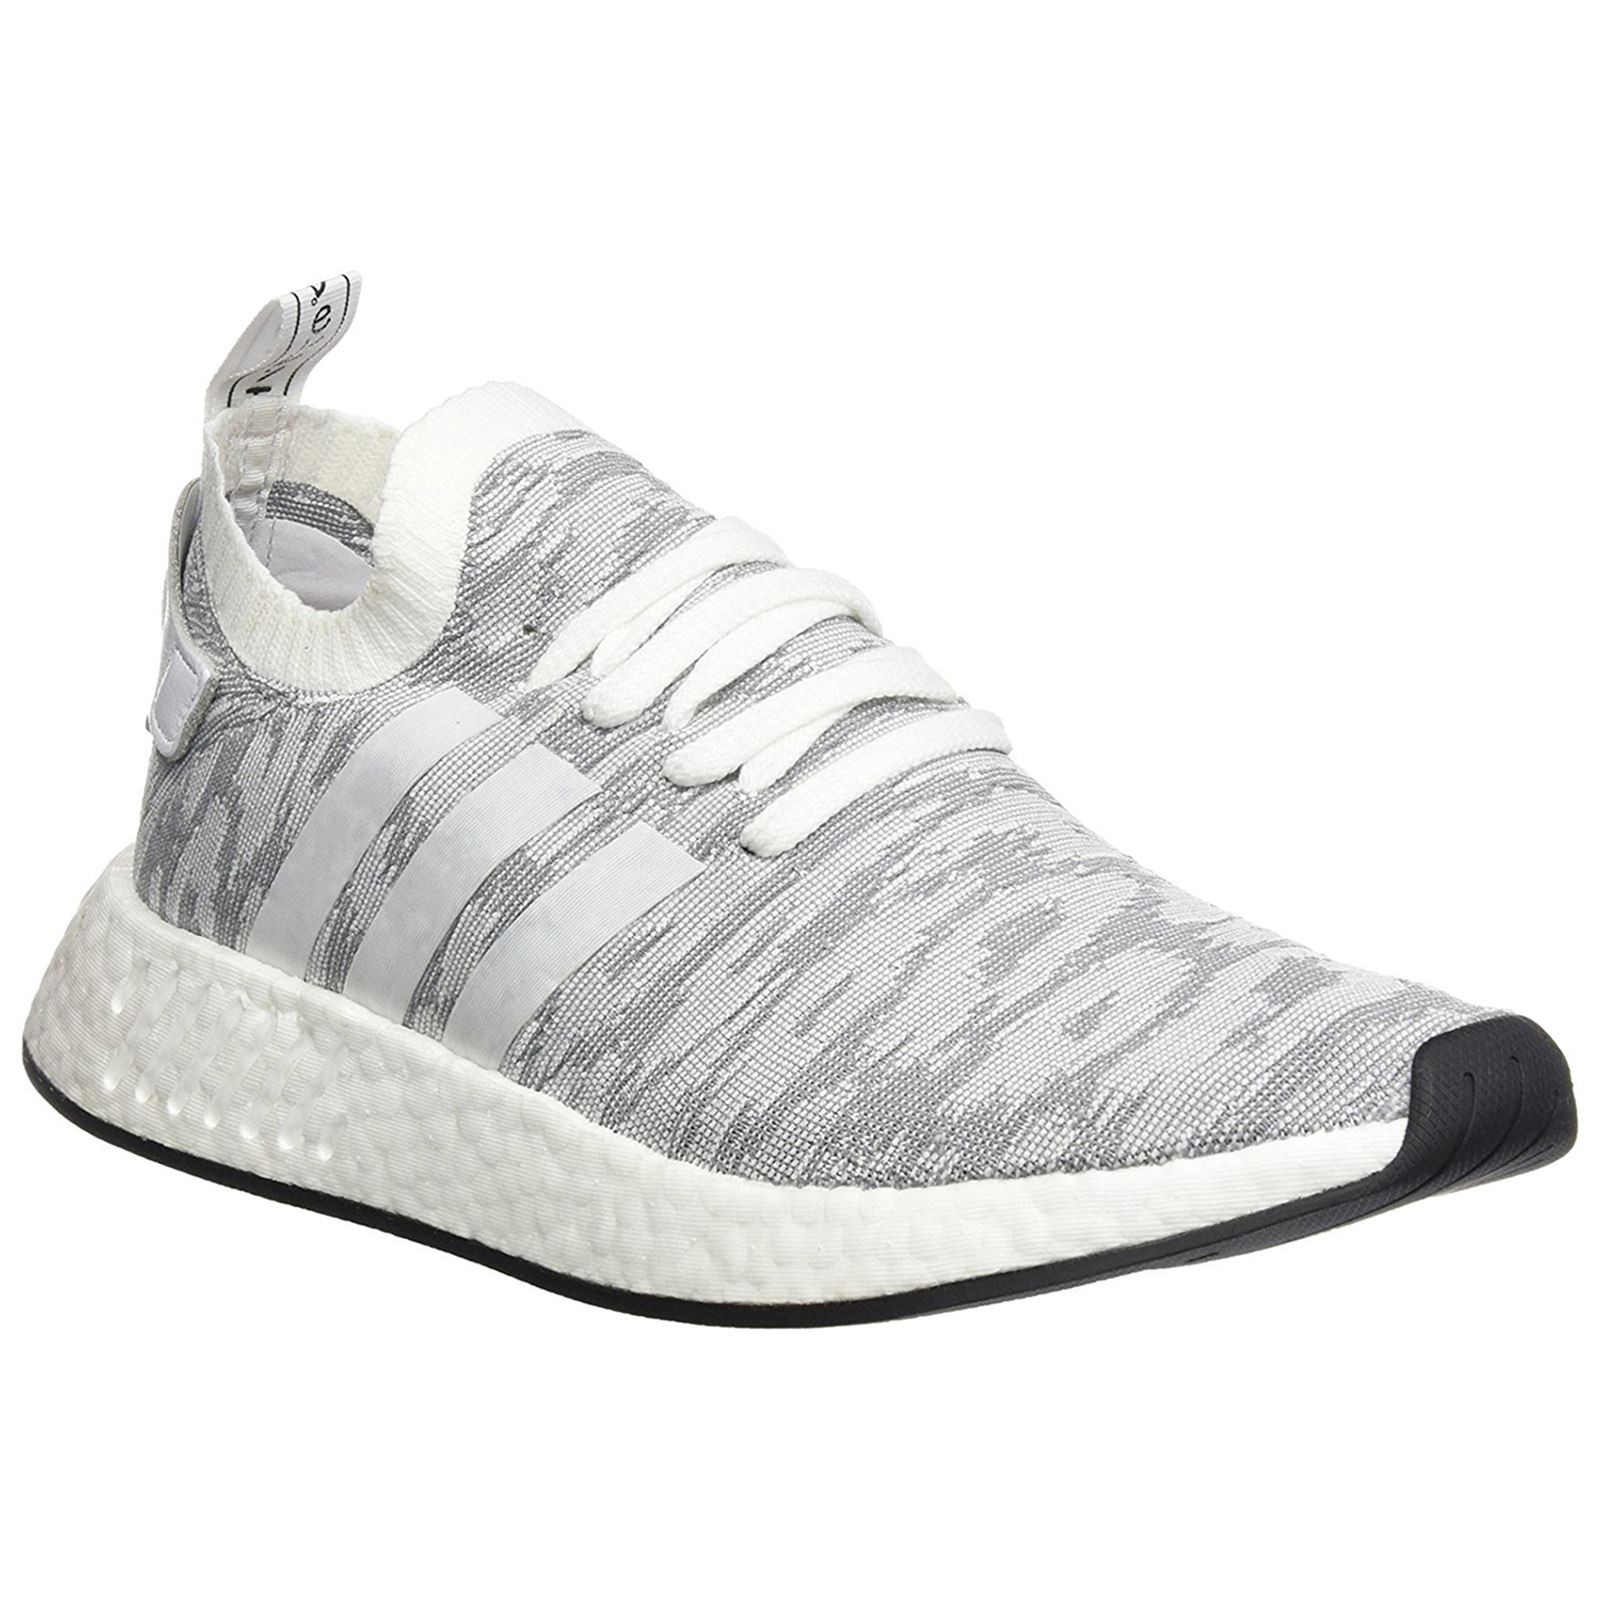 b3d402fbcda Adidas NMD R2 Primeknit Medium Grey White Men Sneakers Boost Technology  Trainers